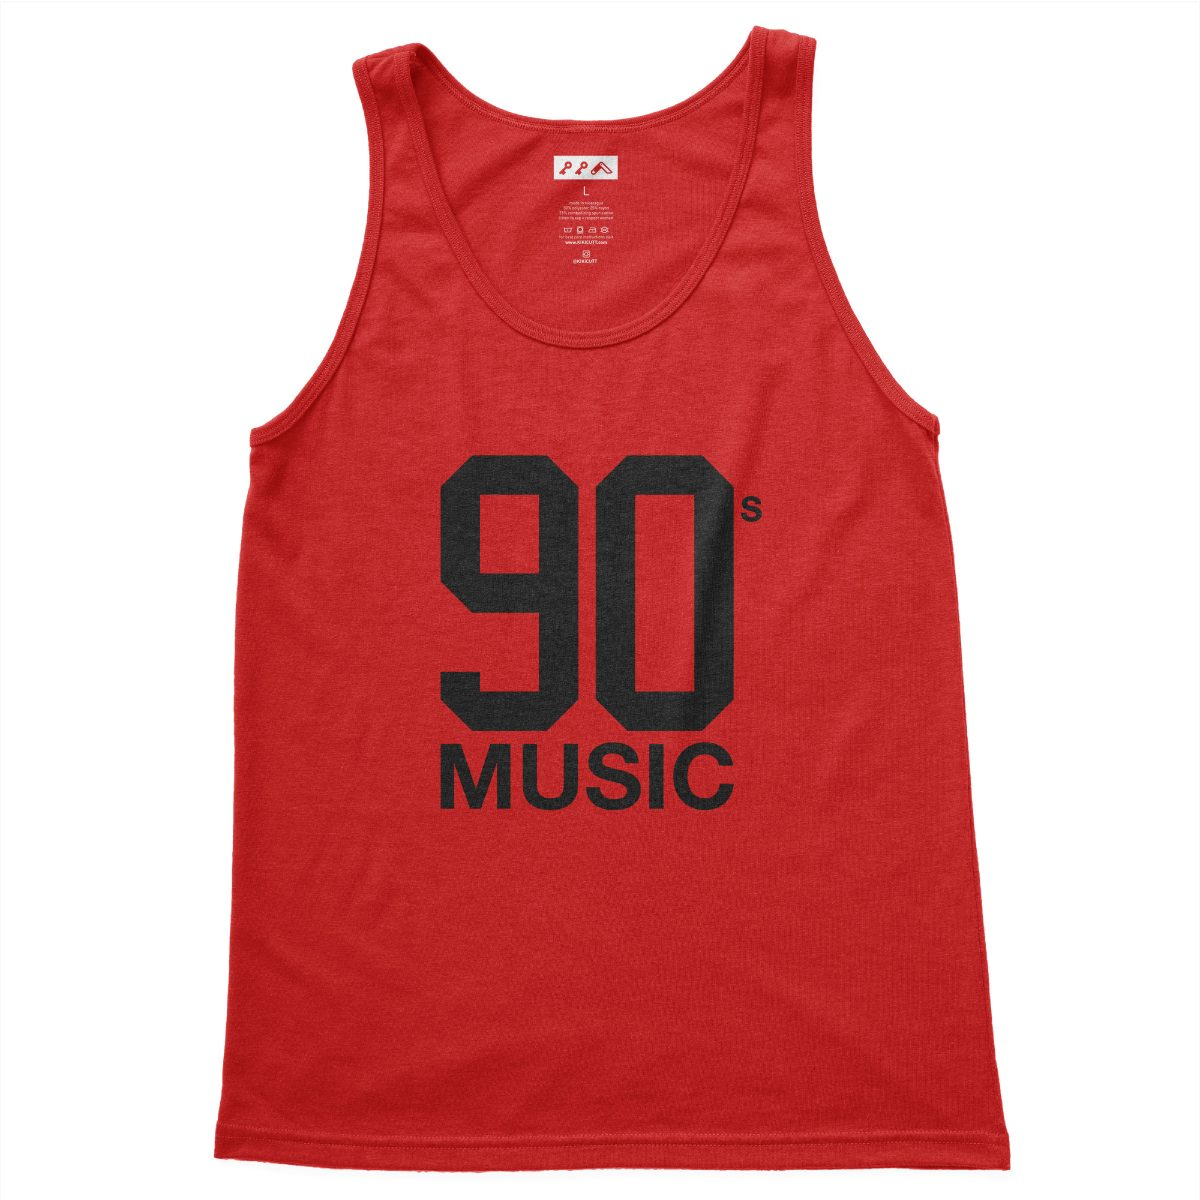 90s MUSIC graphic on a red triblend tank top at kikicutt.com